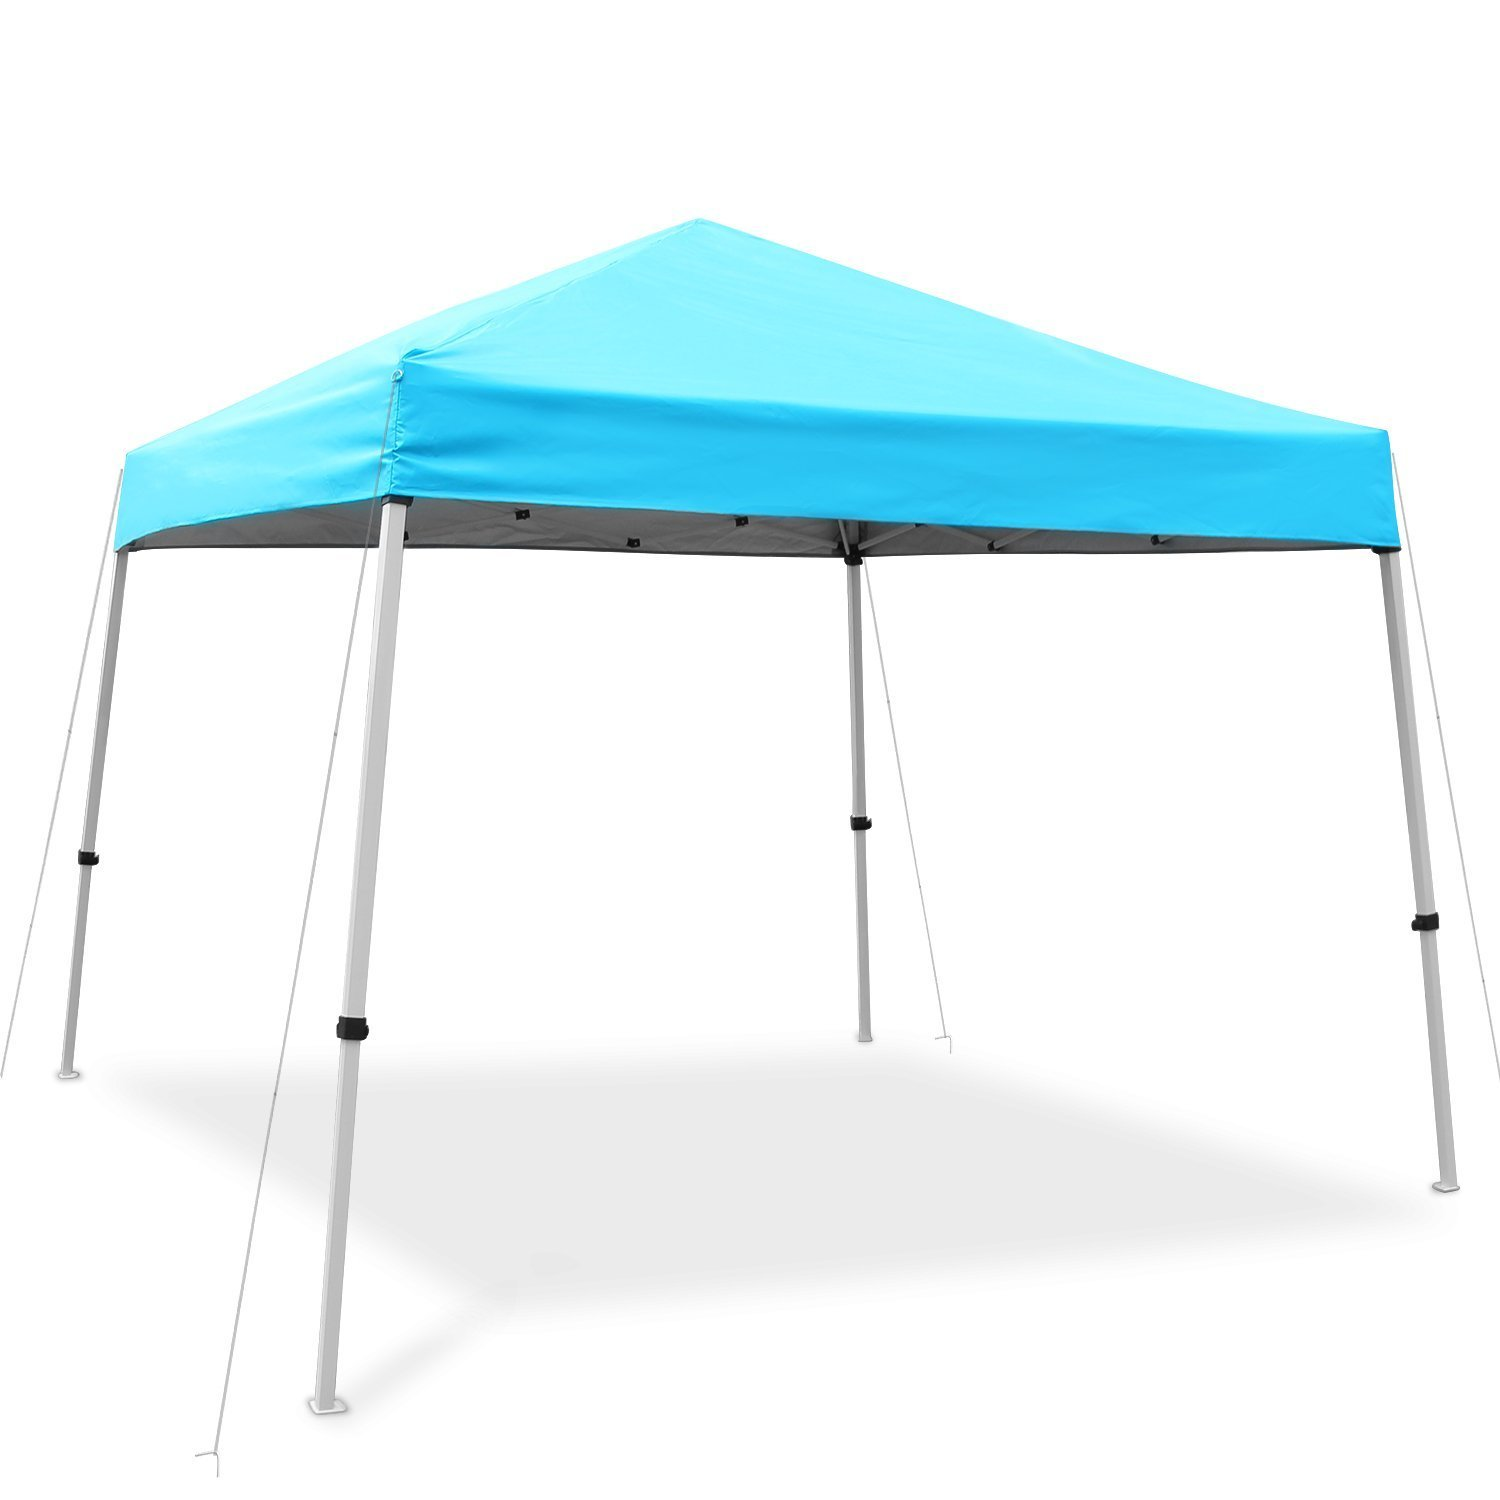 Ohuhu EZ Pop-Up Slant Leg Canopy Tent, 10 X 10 FT Reinforced Steel Frame Commercial Instant Shelter with 3 Adjustable Heights, Easy-Carrying Lightweight Durable Canopy with Wheeled Carry Bag, Blue